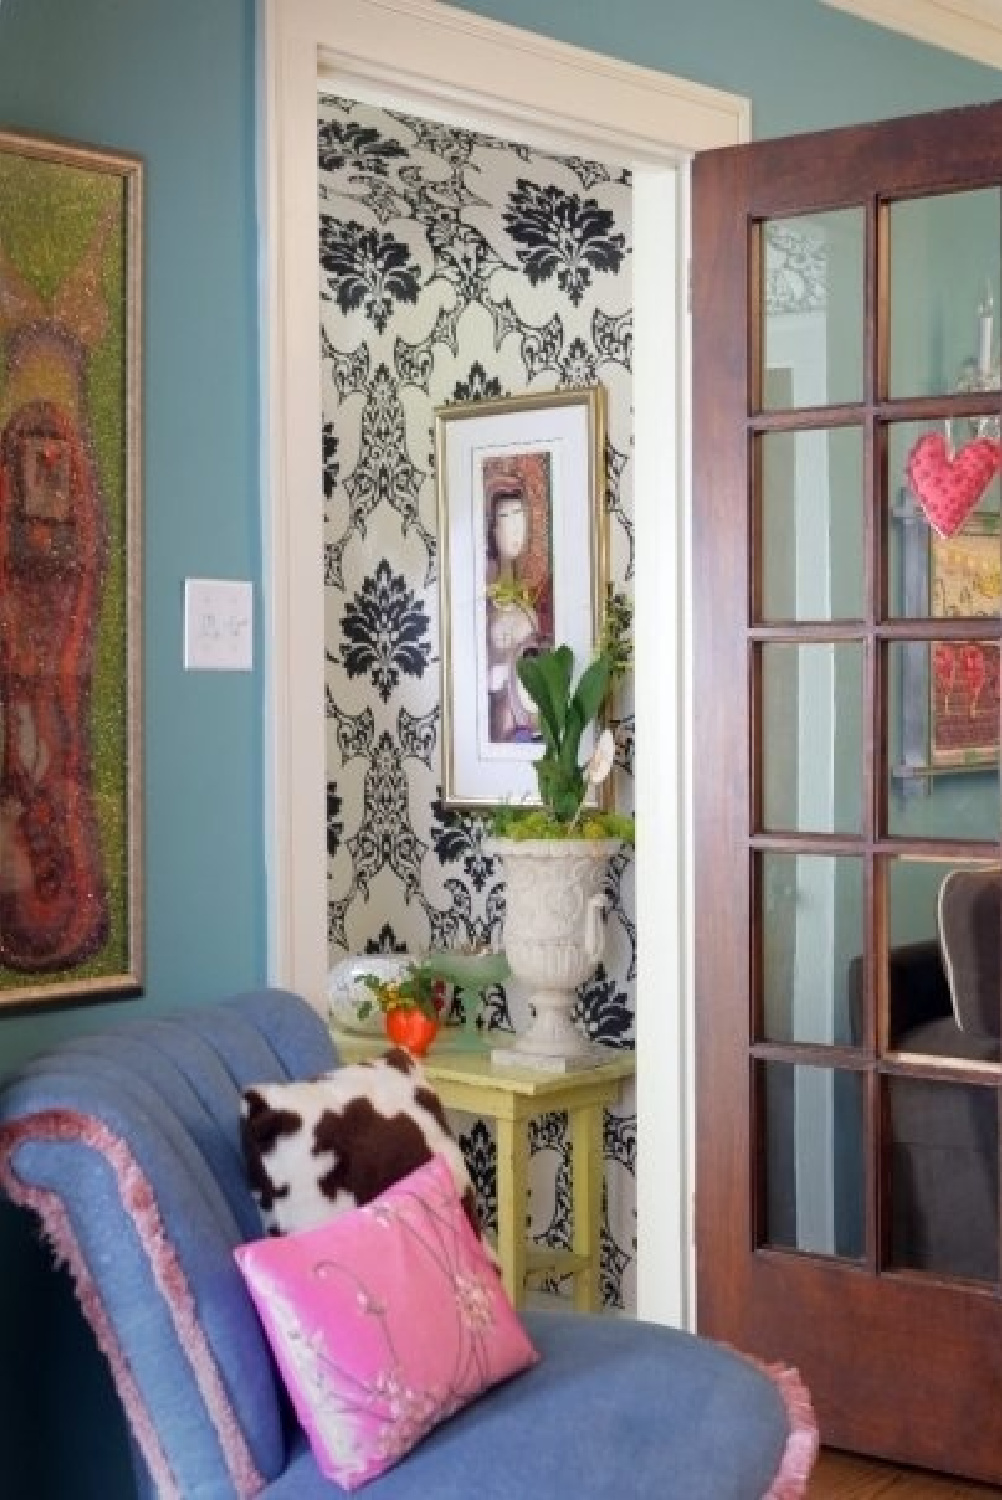 Turquoise wall in a groovy foyer with eclectic flea market style - Jenny Sweeney.